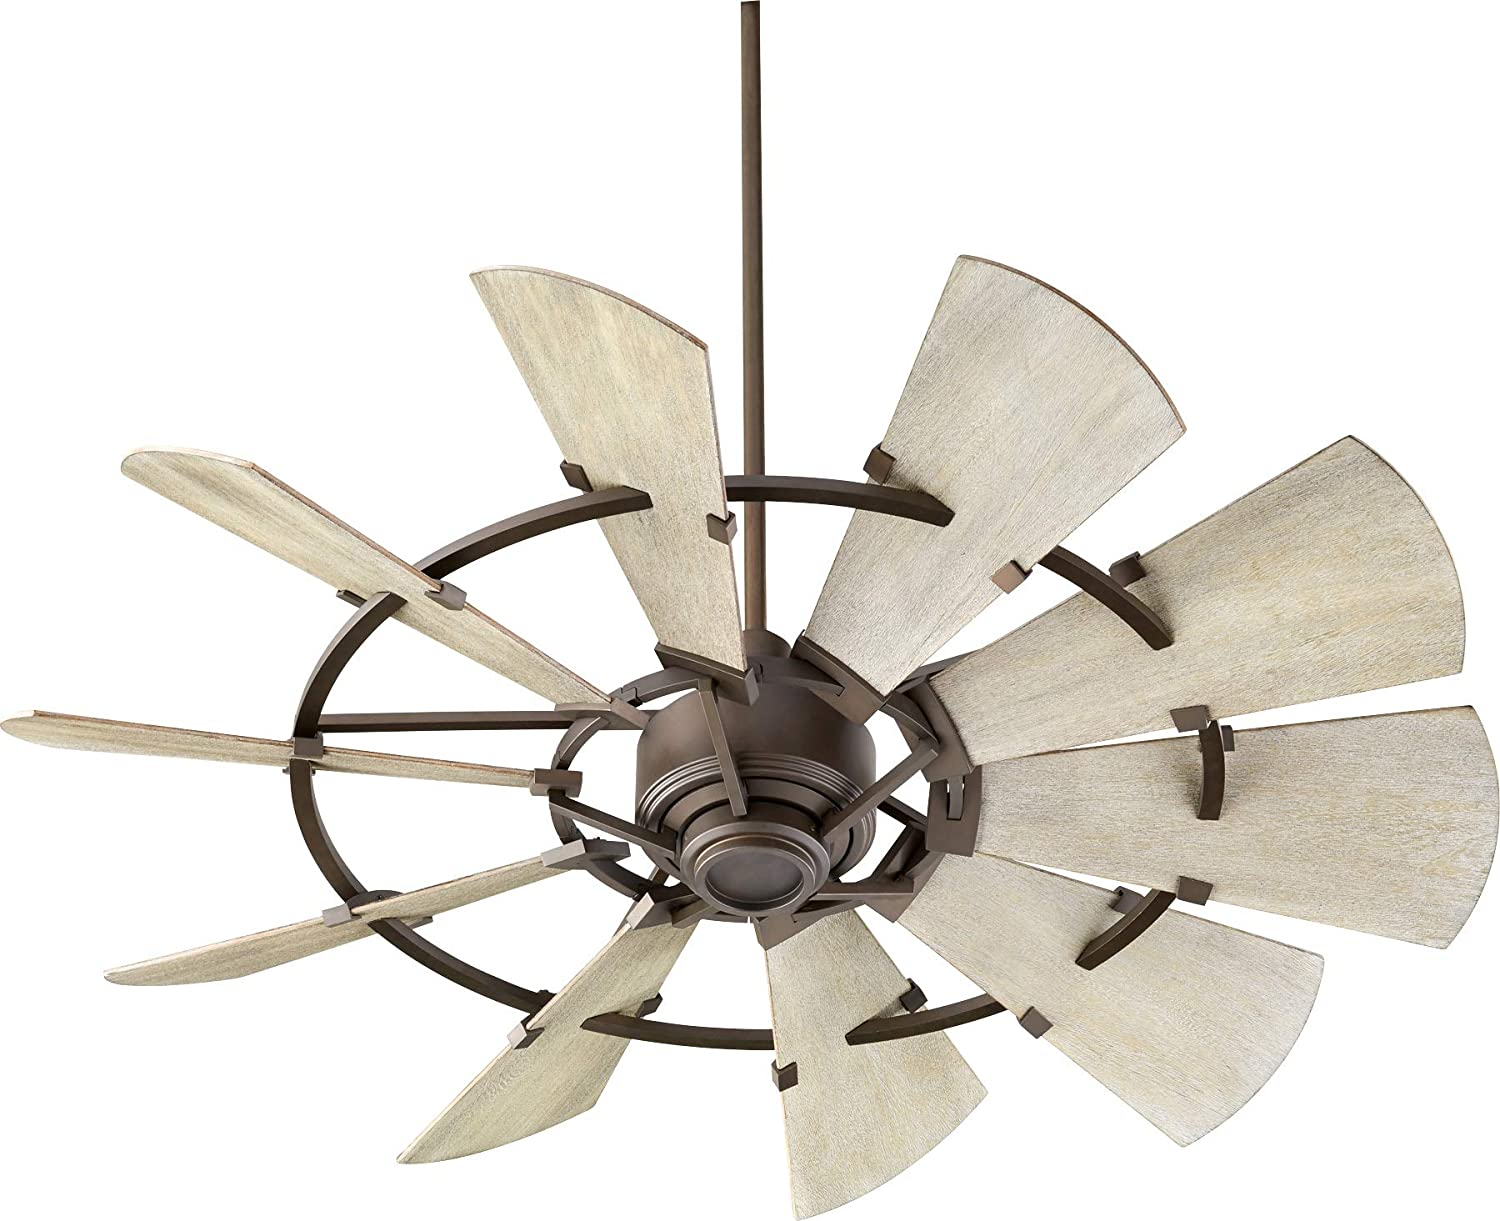 Quorum 95210-86 Windmill 52 Ceiling Fan with Wall Control, Oiled Bronze